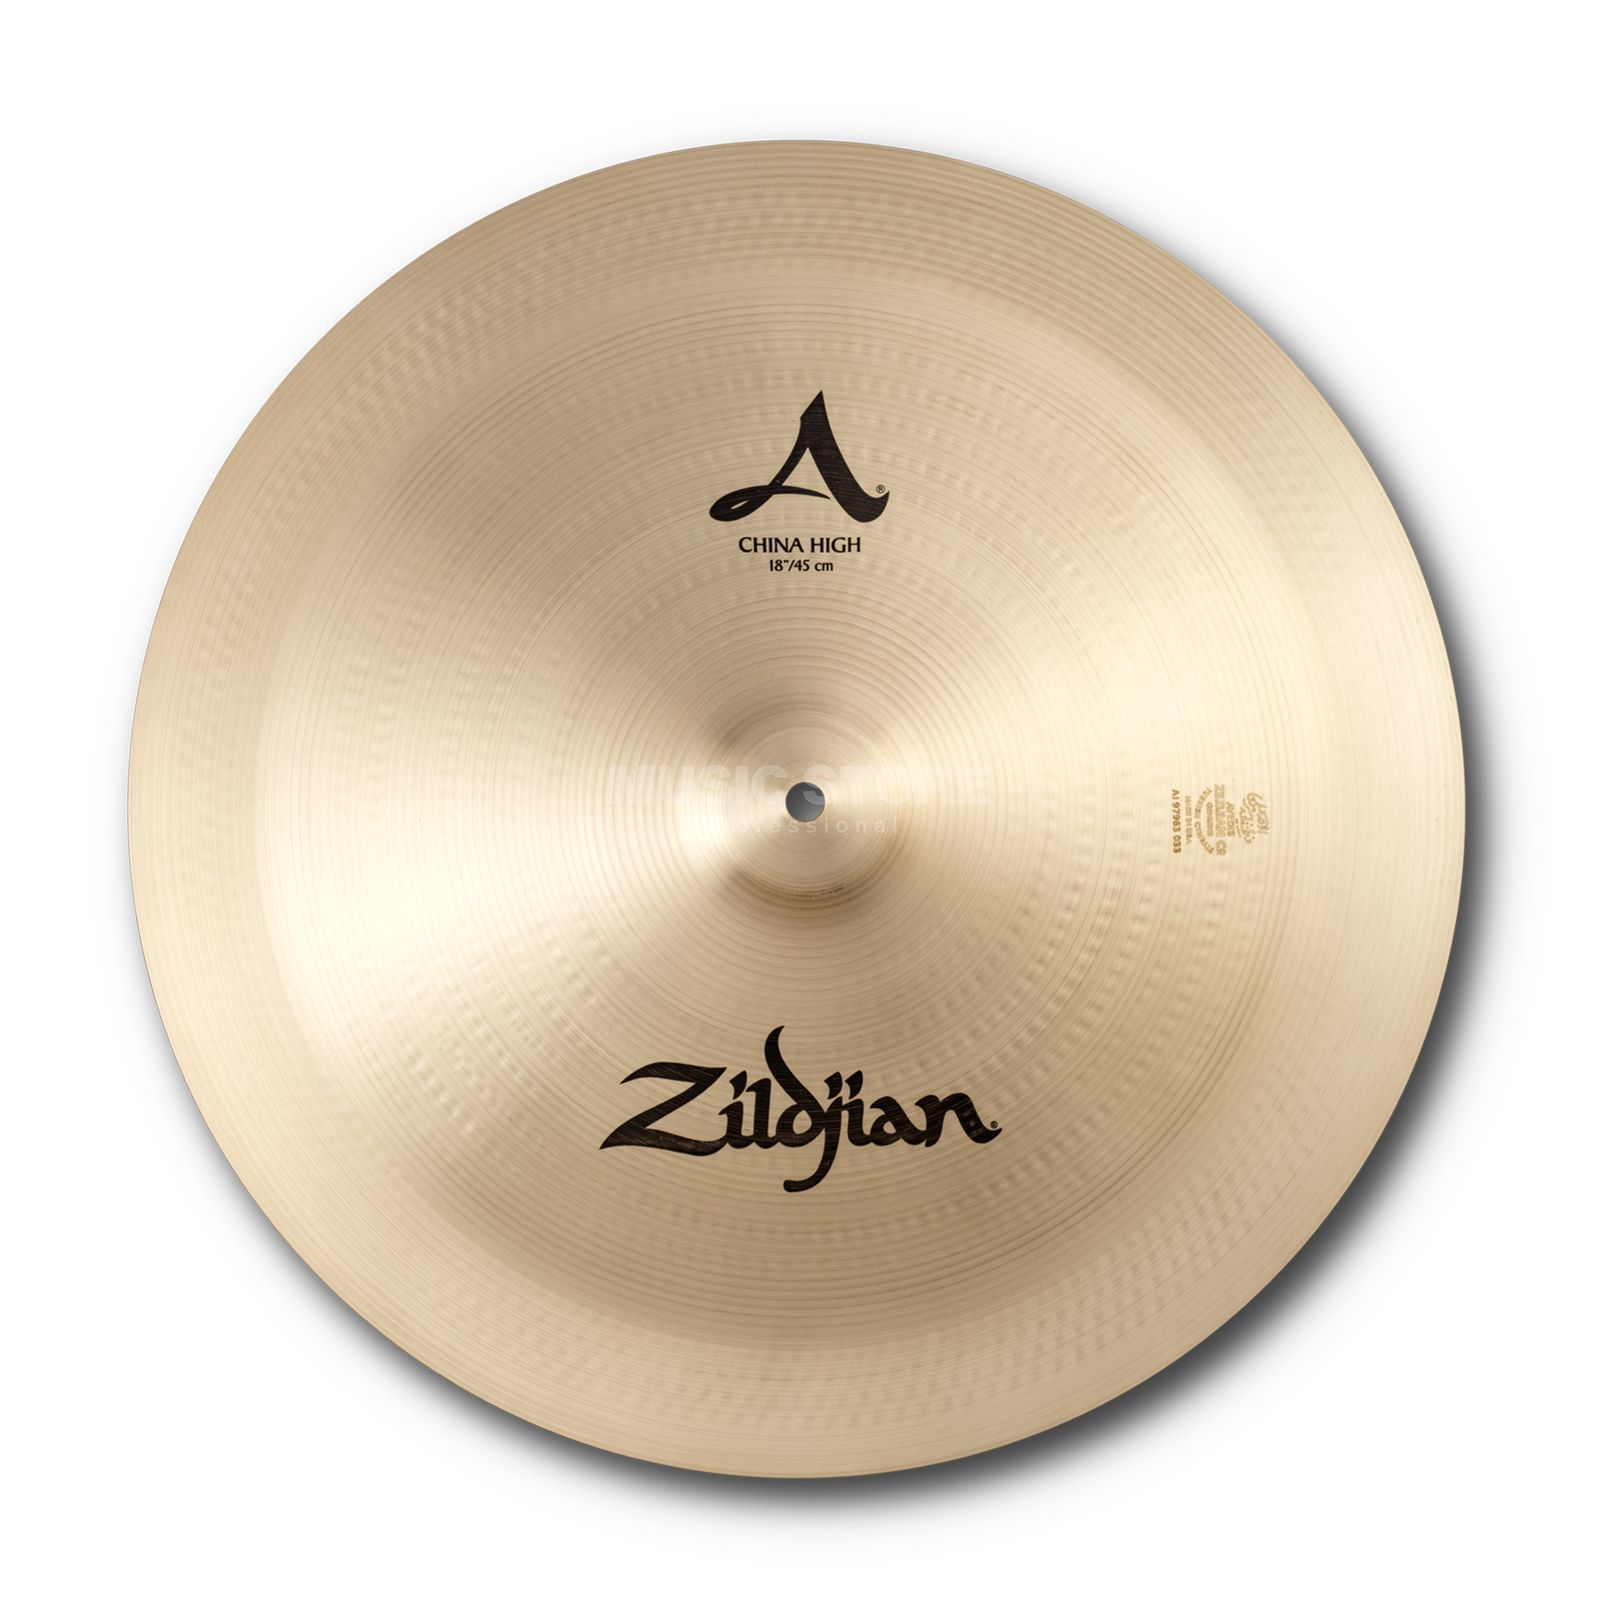 "Zildjian Avedis China Boy High 18"", finition traditionnelle Image du produit"